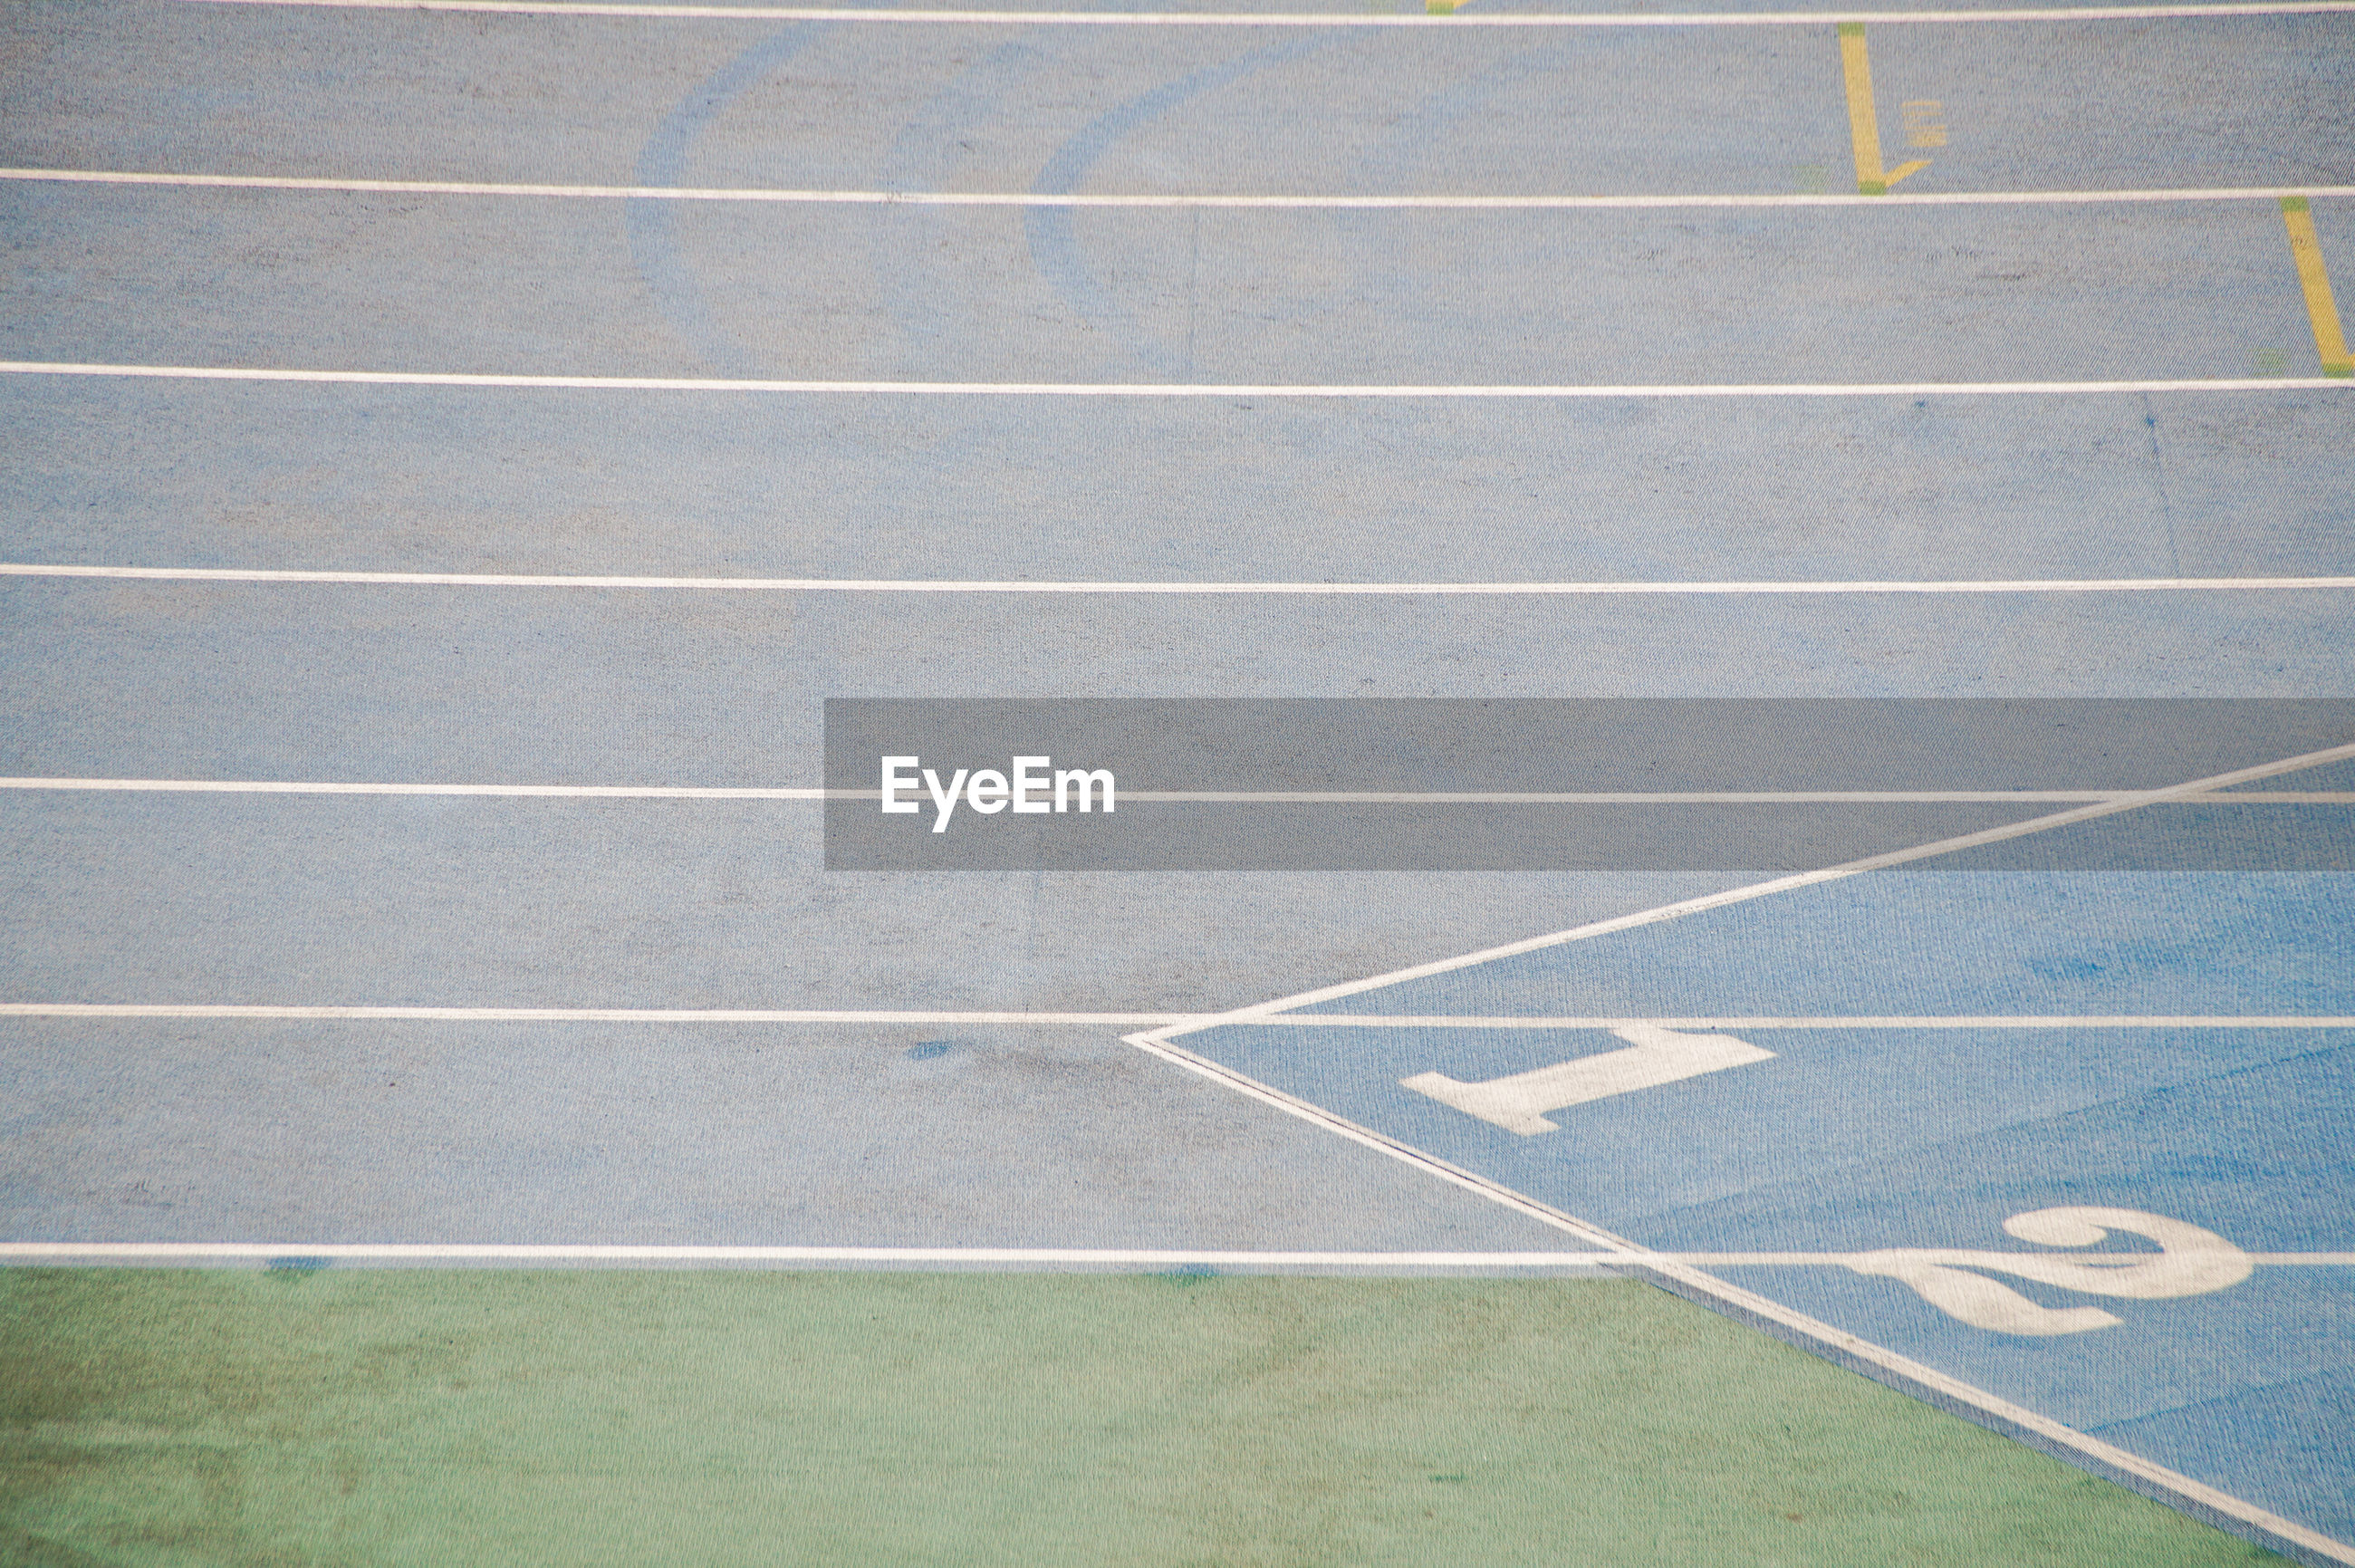 High angle view of running track with numbers in stadium